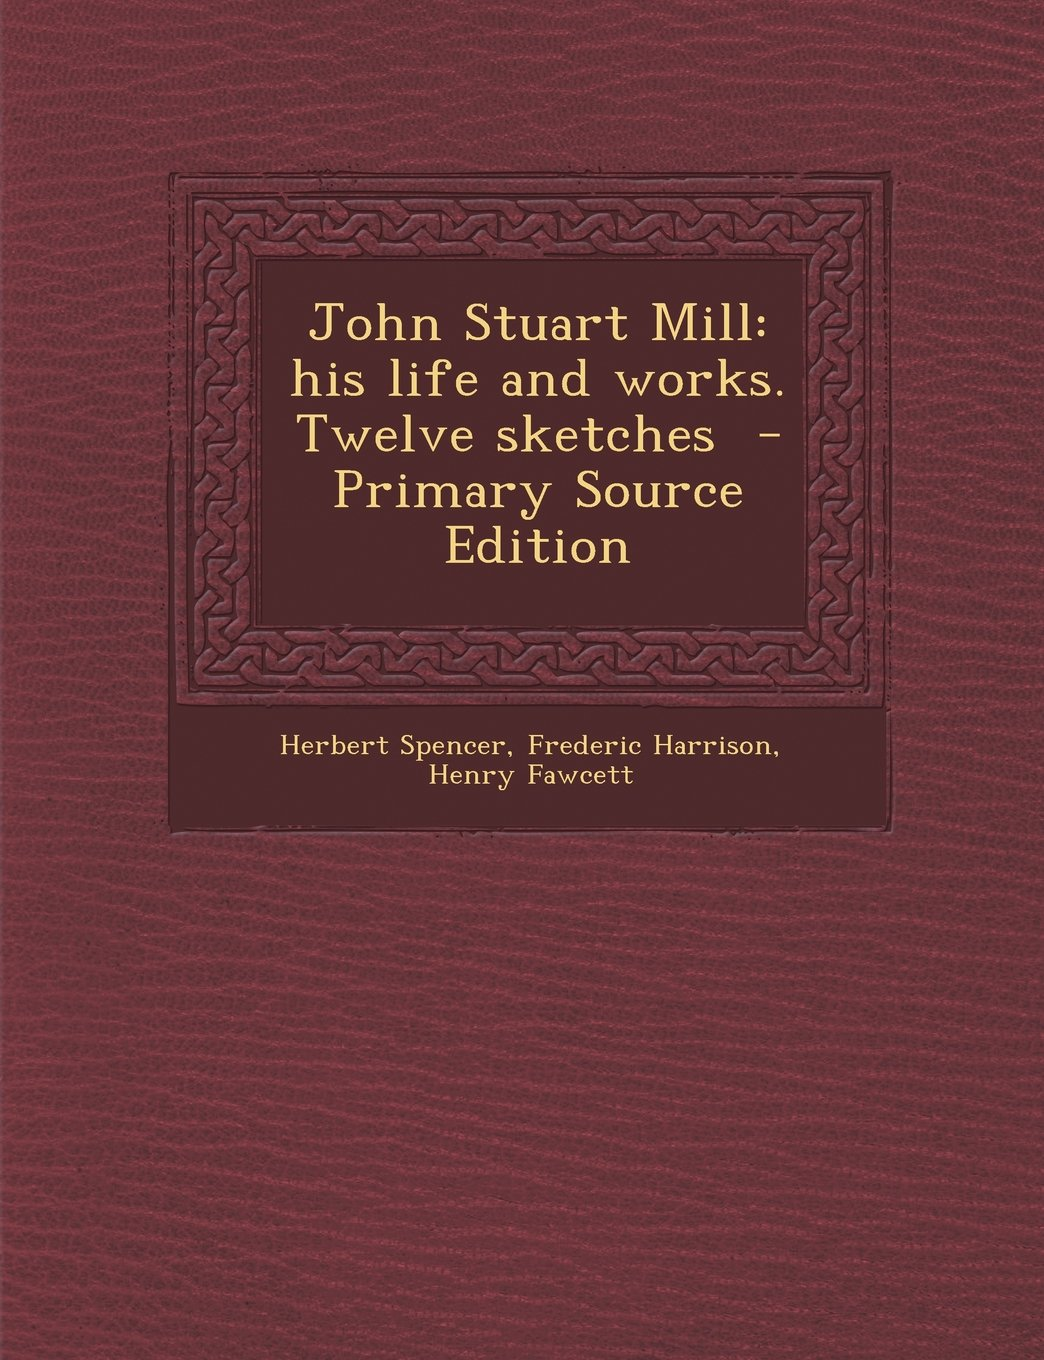 John Stuart Mill: his life and works. Twelve sketches  - Primary Source Edition